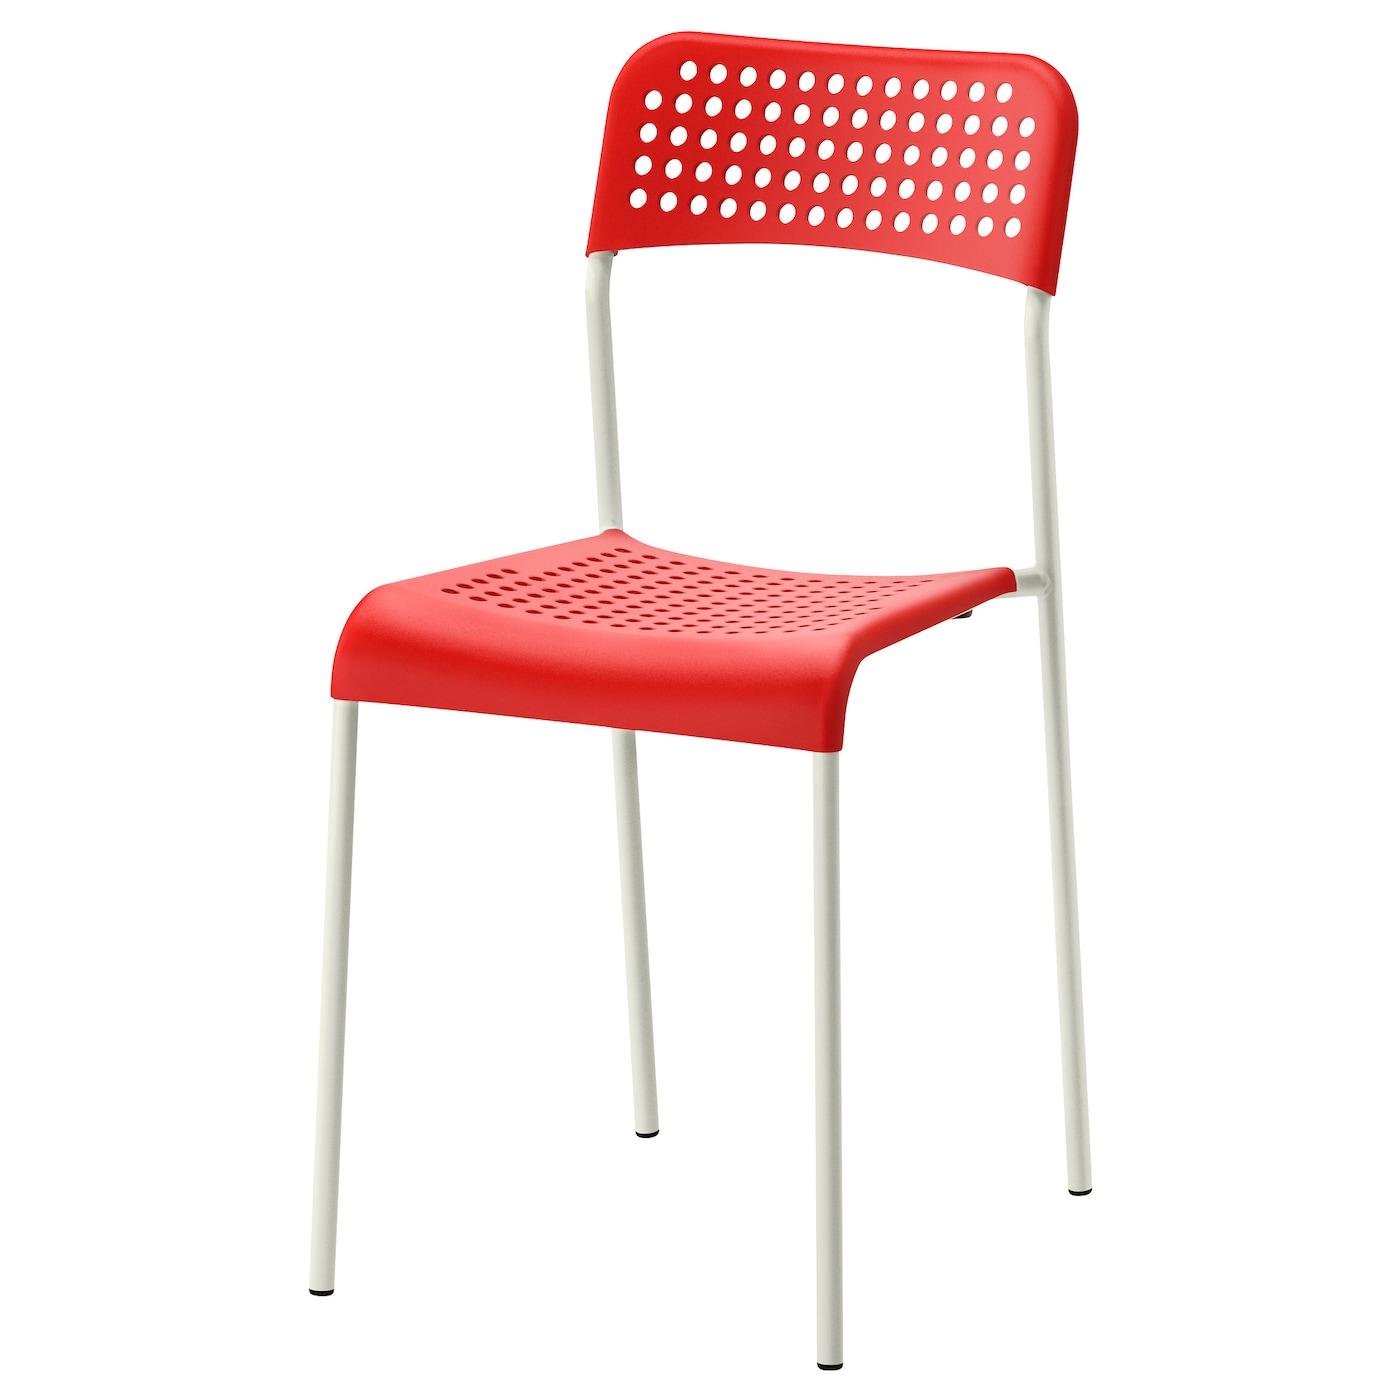 ADDE Chair Red white IKEA